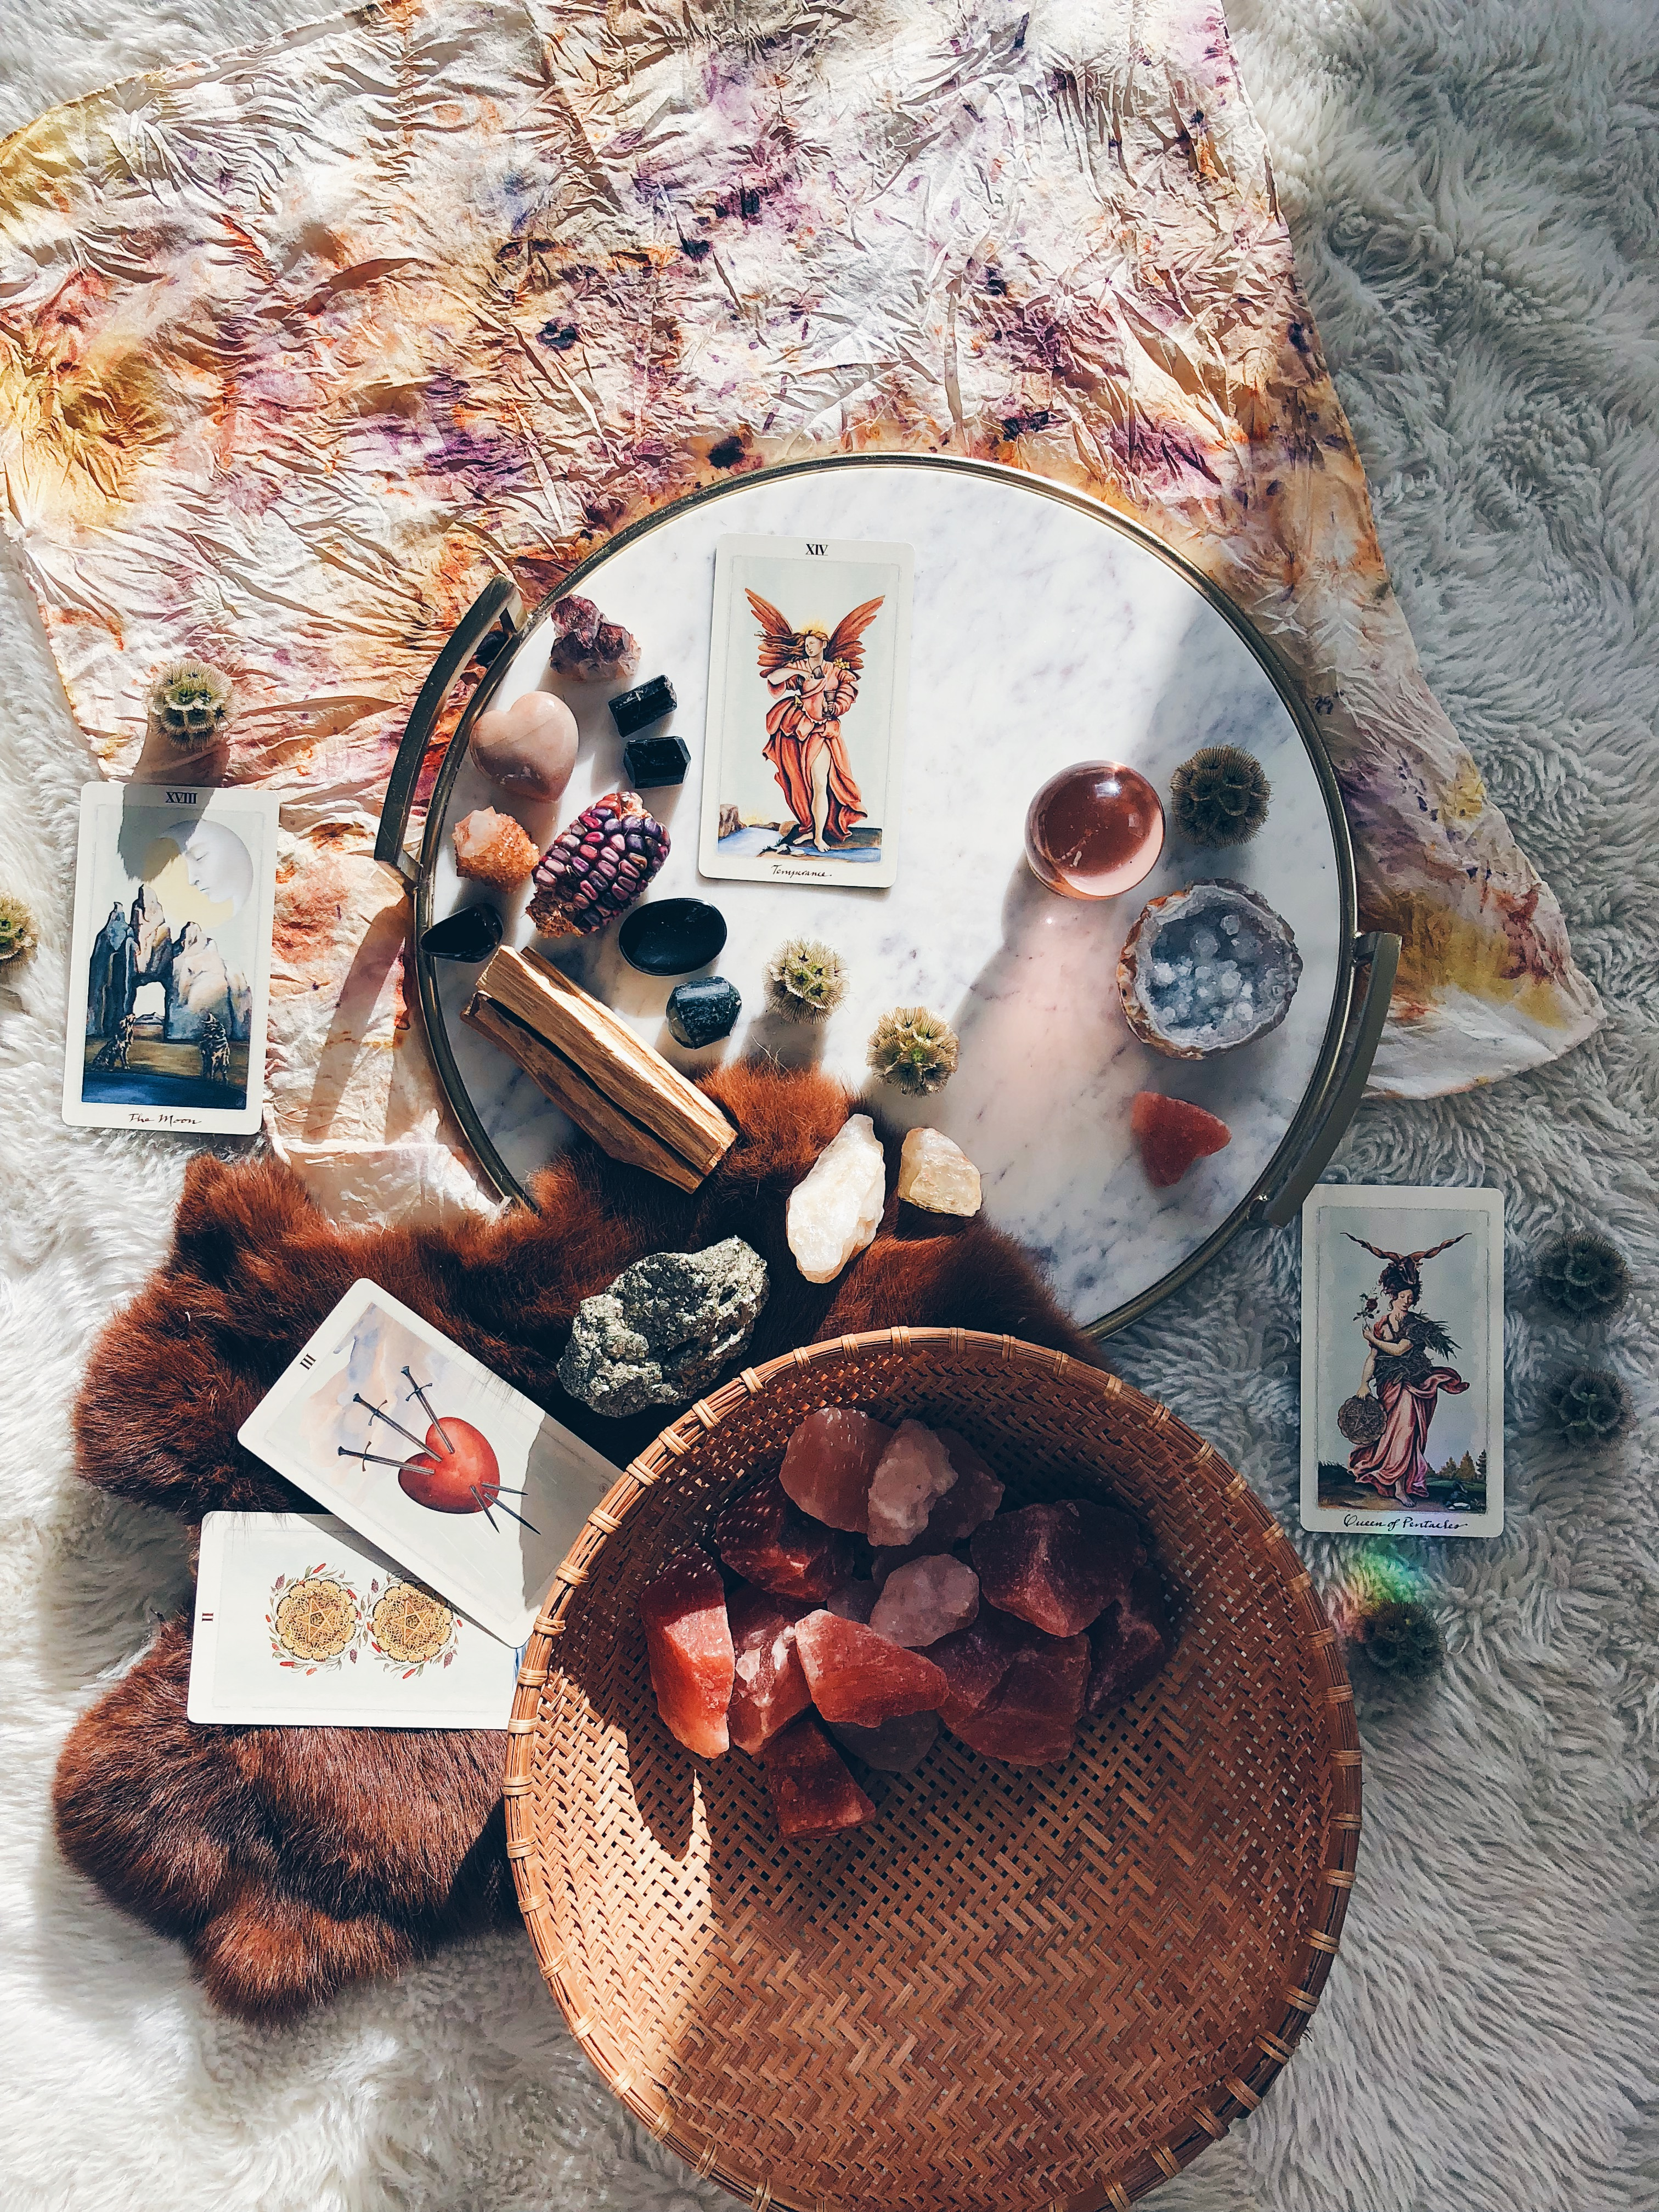 Moon Magic: How to Create Rituals Around the Cycle of the